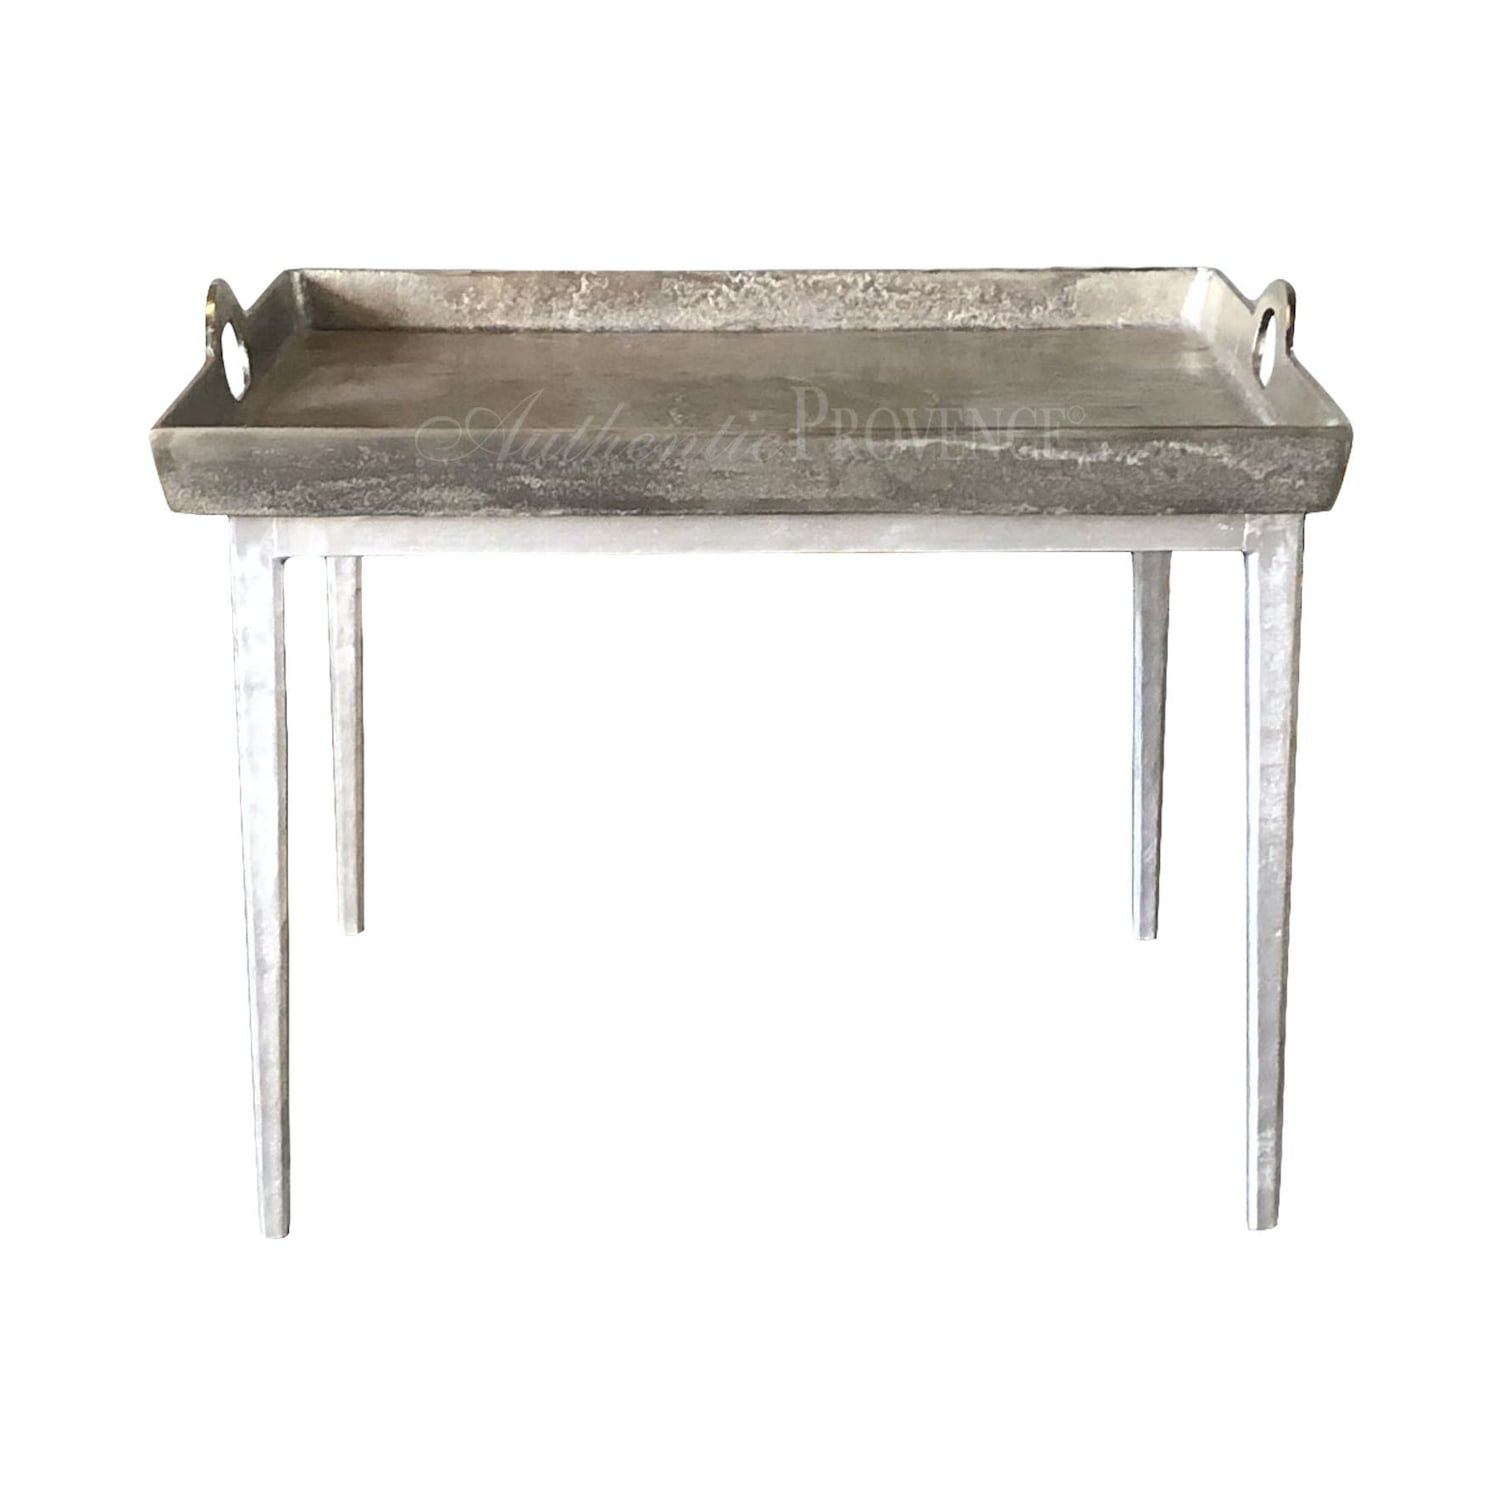 Belgian side table with hammered aluminum tray with lateral handles on metal tapered legs